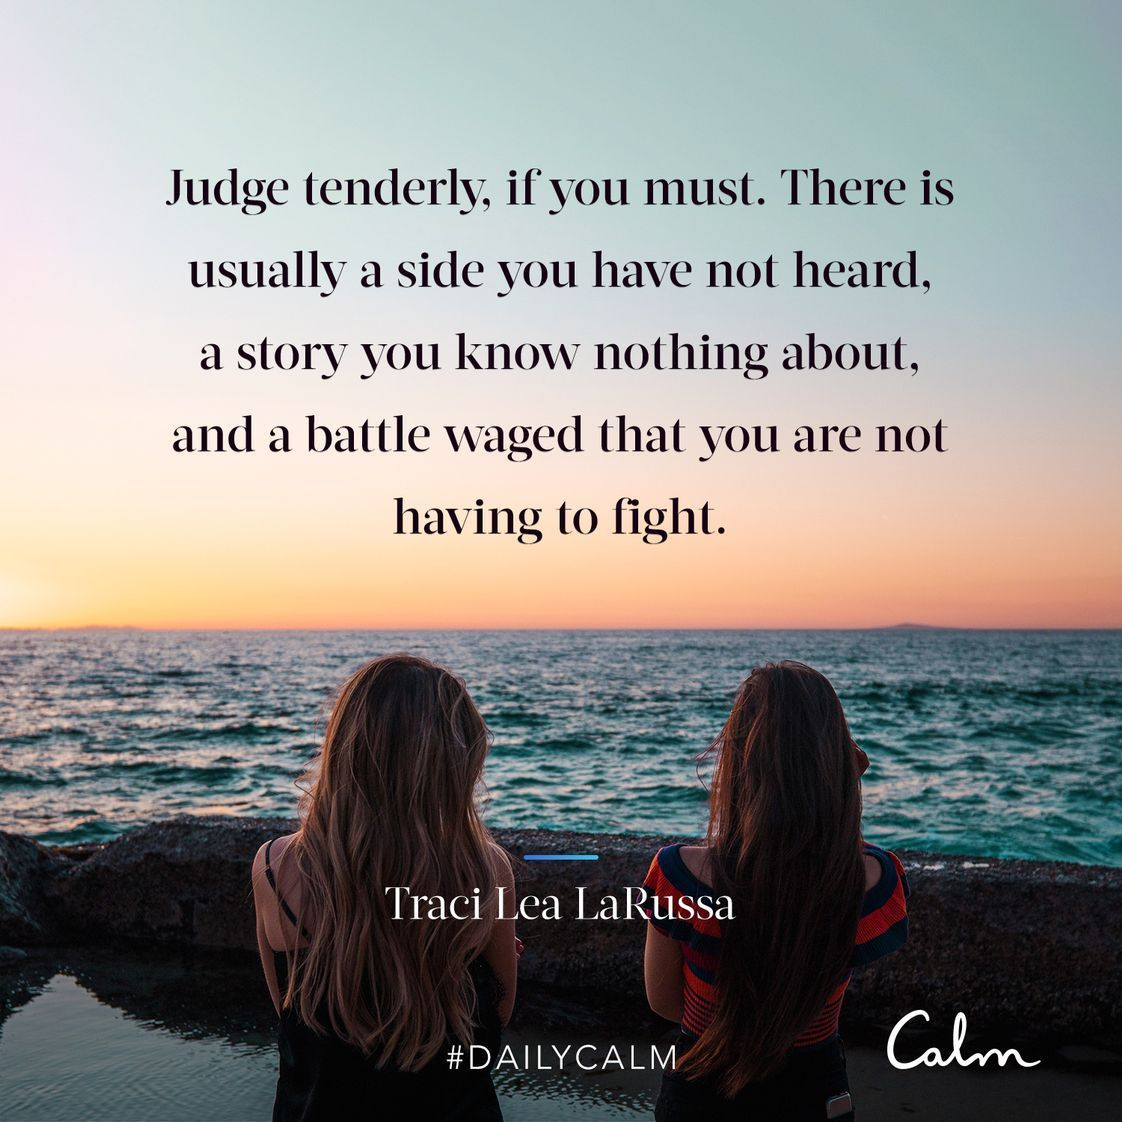 Dailycalm calm daily calm calm quotes one day quotes